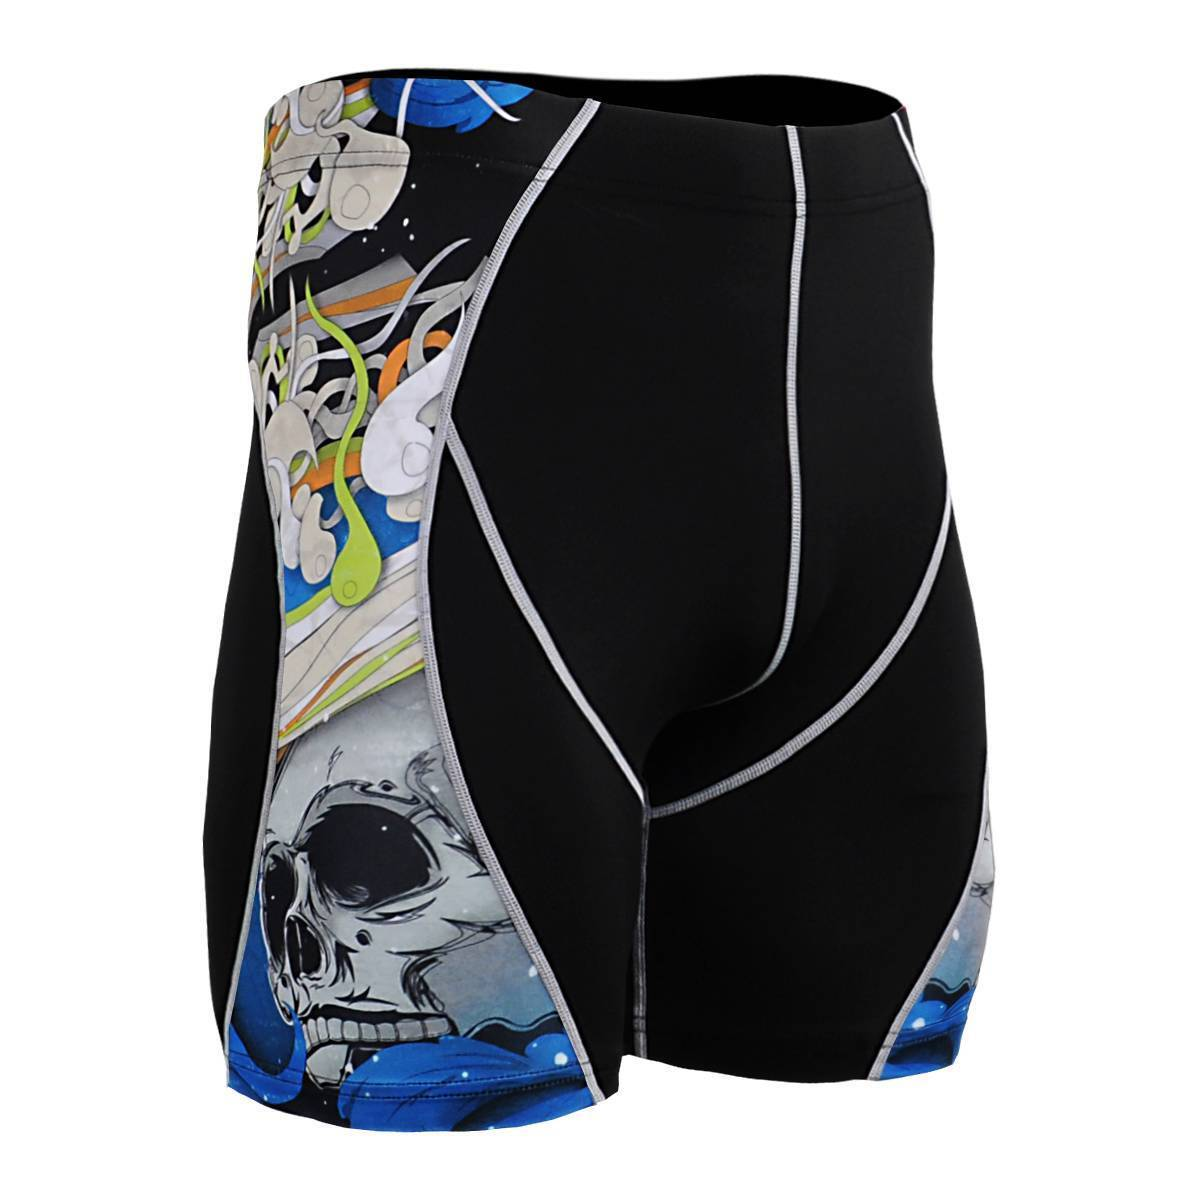 FIXGEAR P2S-B19B Compression Skin-Tights Shorts MMA Workout Training Fitness GYM